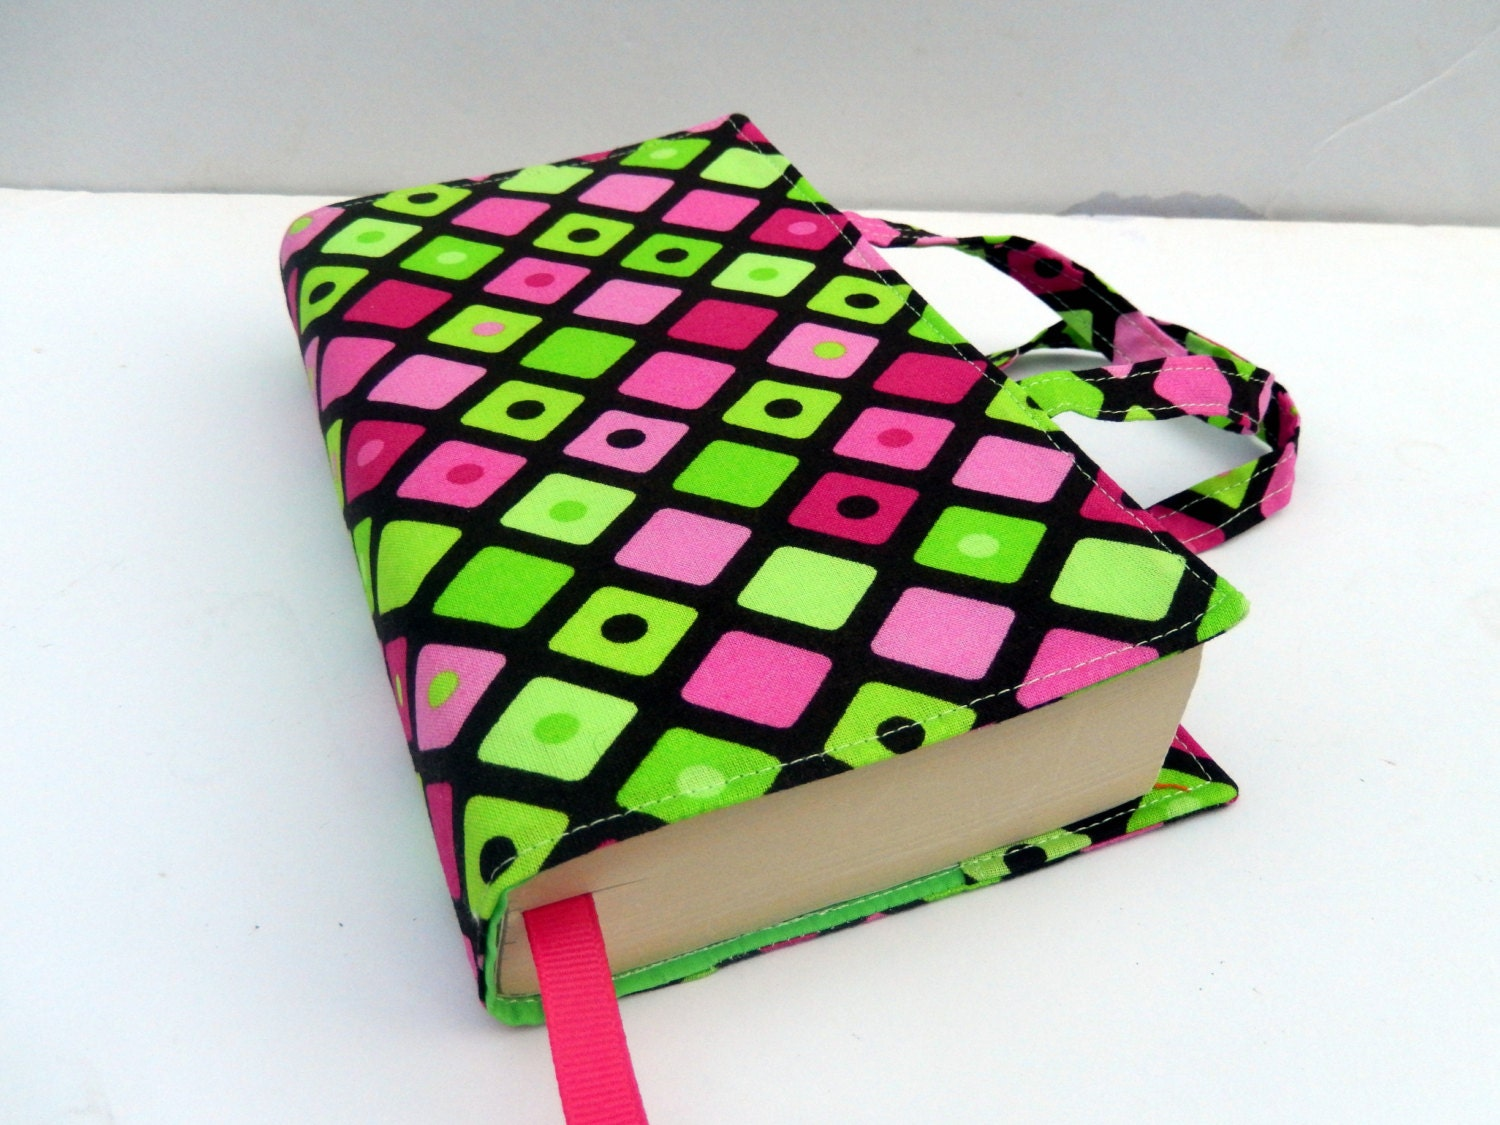 How To Make A Fabric Book Cover With Handles : Paperback fabric book cover with handles